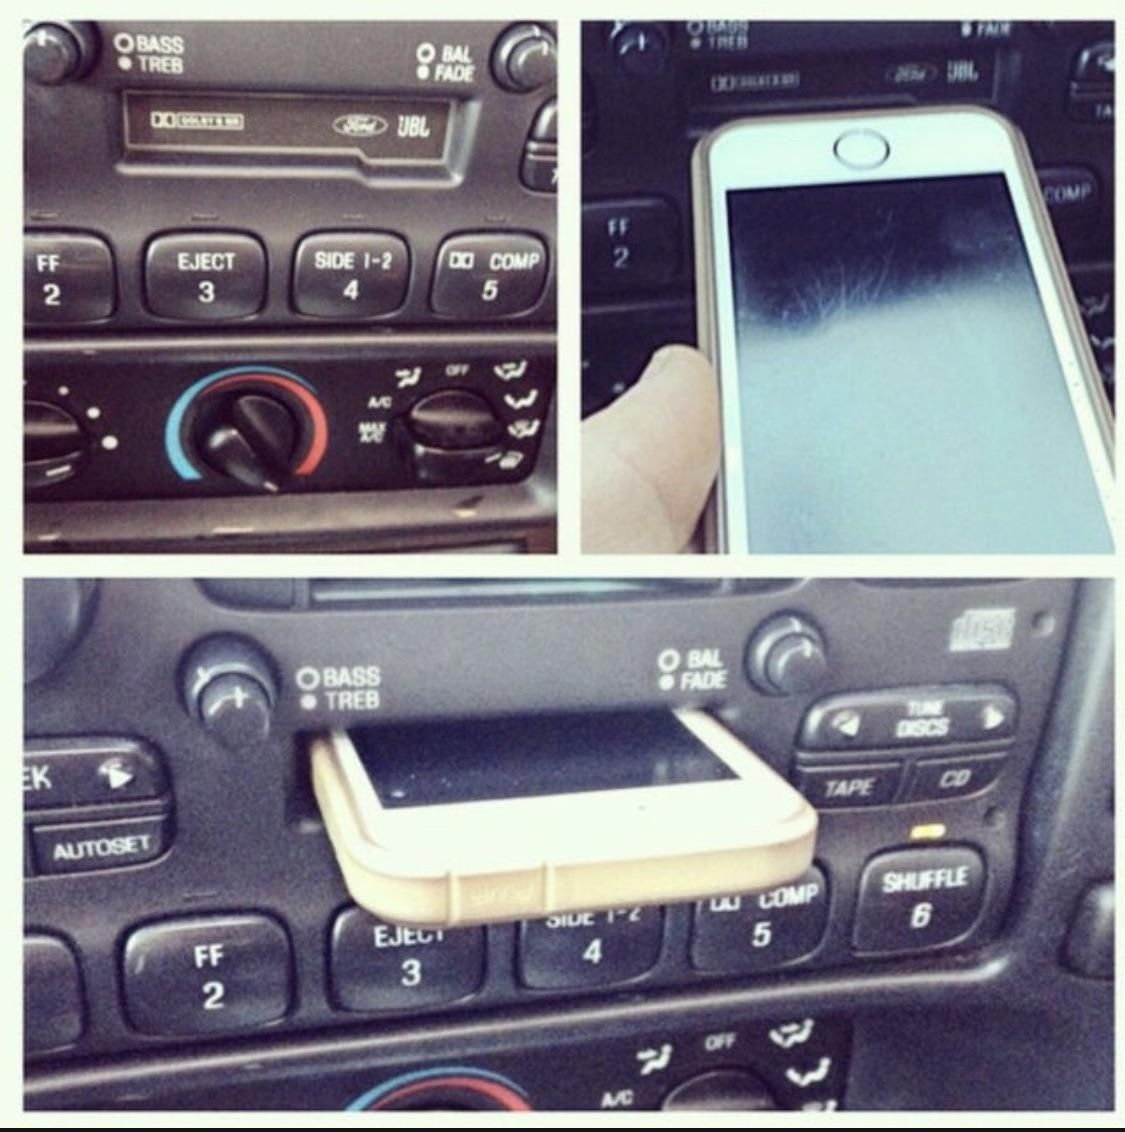 Perfect fit - put a charger in there!